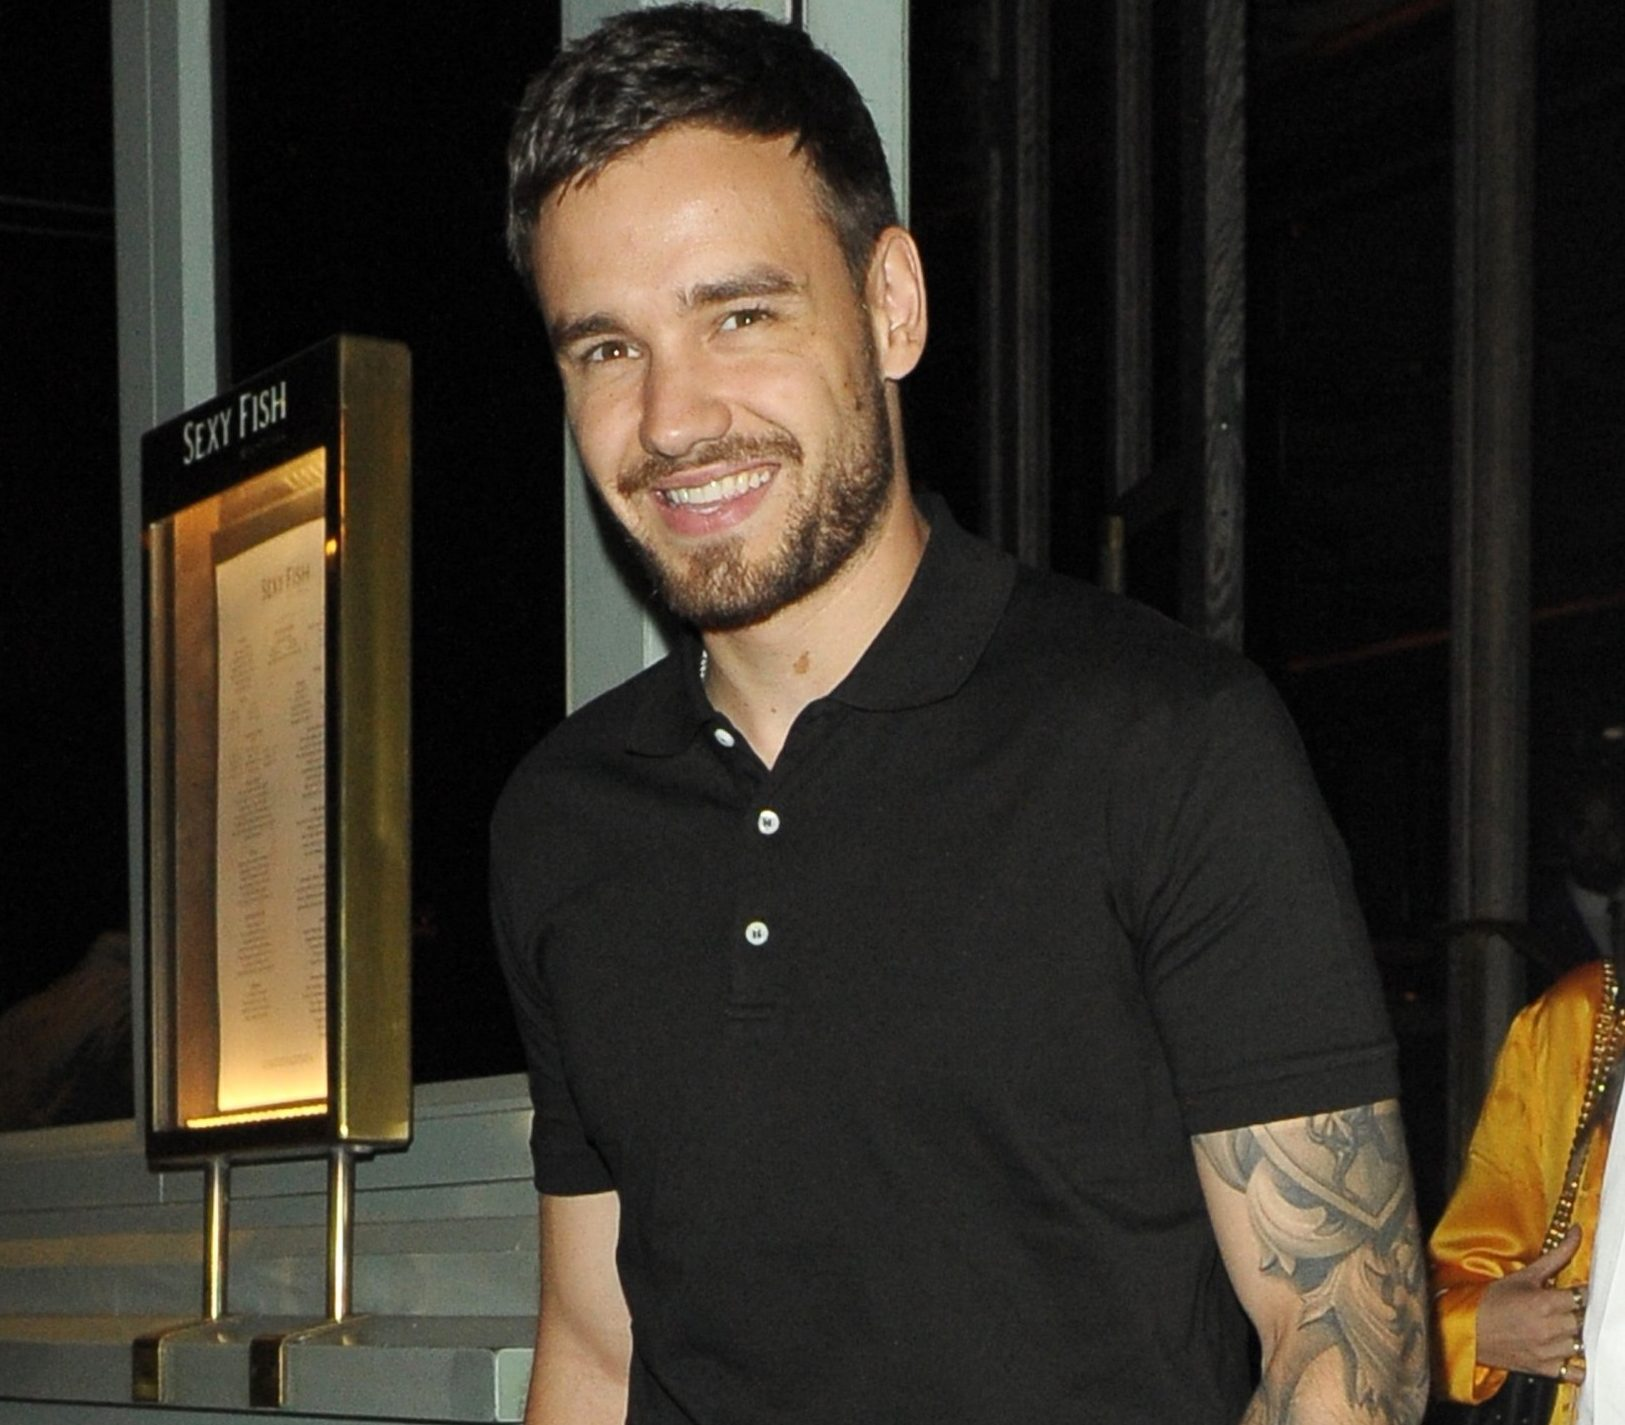 BGUK_1293791 - London, UNITED KINGDOM - Liam Payne sporting a beard was in good humour enjoying the company of three female friends at Sexy Fish restaurant in Mayfair, London. The former One Direction band member showed numerous tattoos on his arms wearing a short sleeved black polo shirt, he was also wearing trousers and black trainers. Pictured: Liam Payne BACKGRID UK 19 JULY 2018 UK: +44 208 344 2007 / uksales@backgrid.com USA: +1 310 798 9111 / usasales@backgrid.com *UK Clients - Pictures Containing Children Please Pixelate Face Prior To Publication*